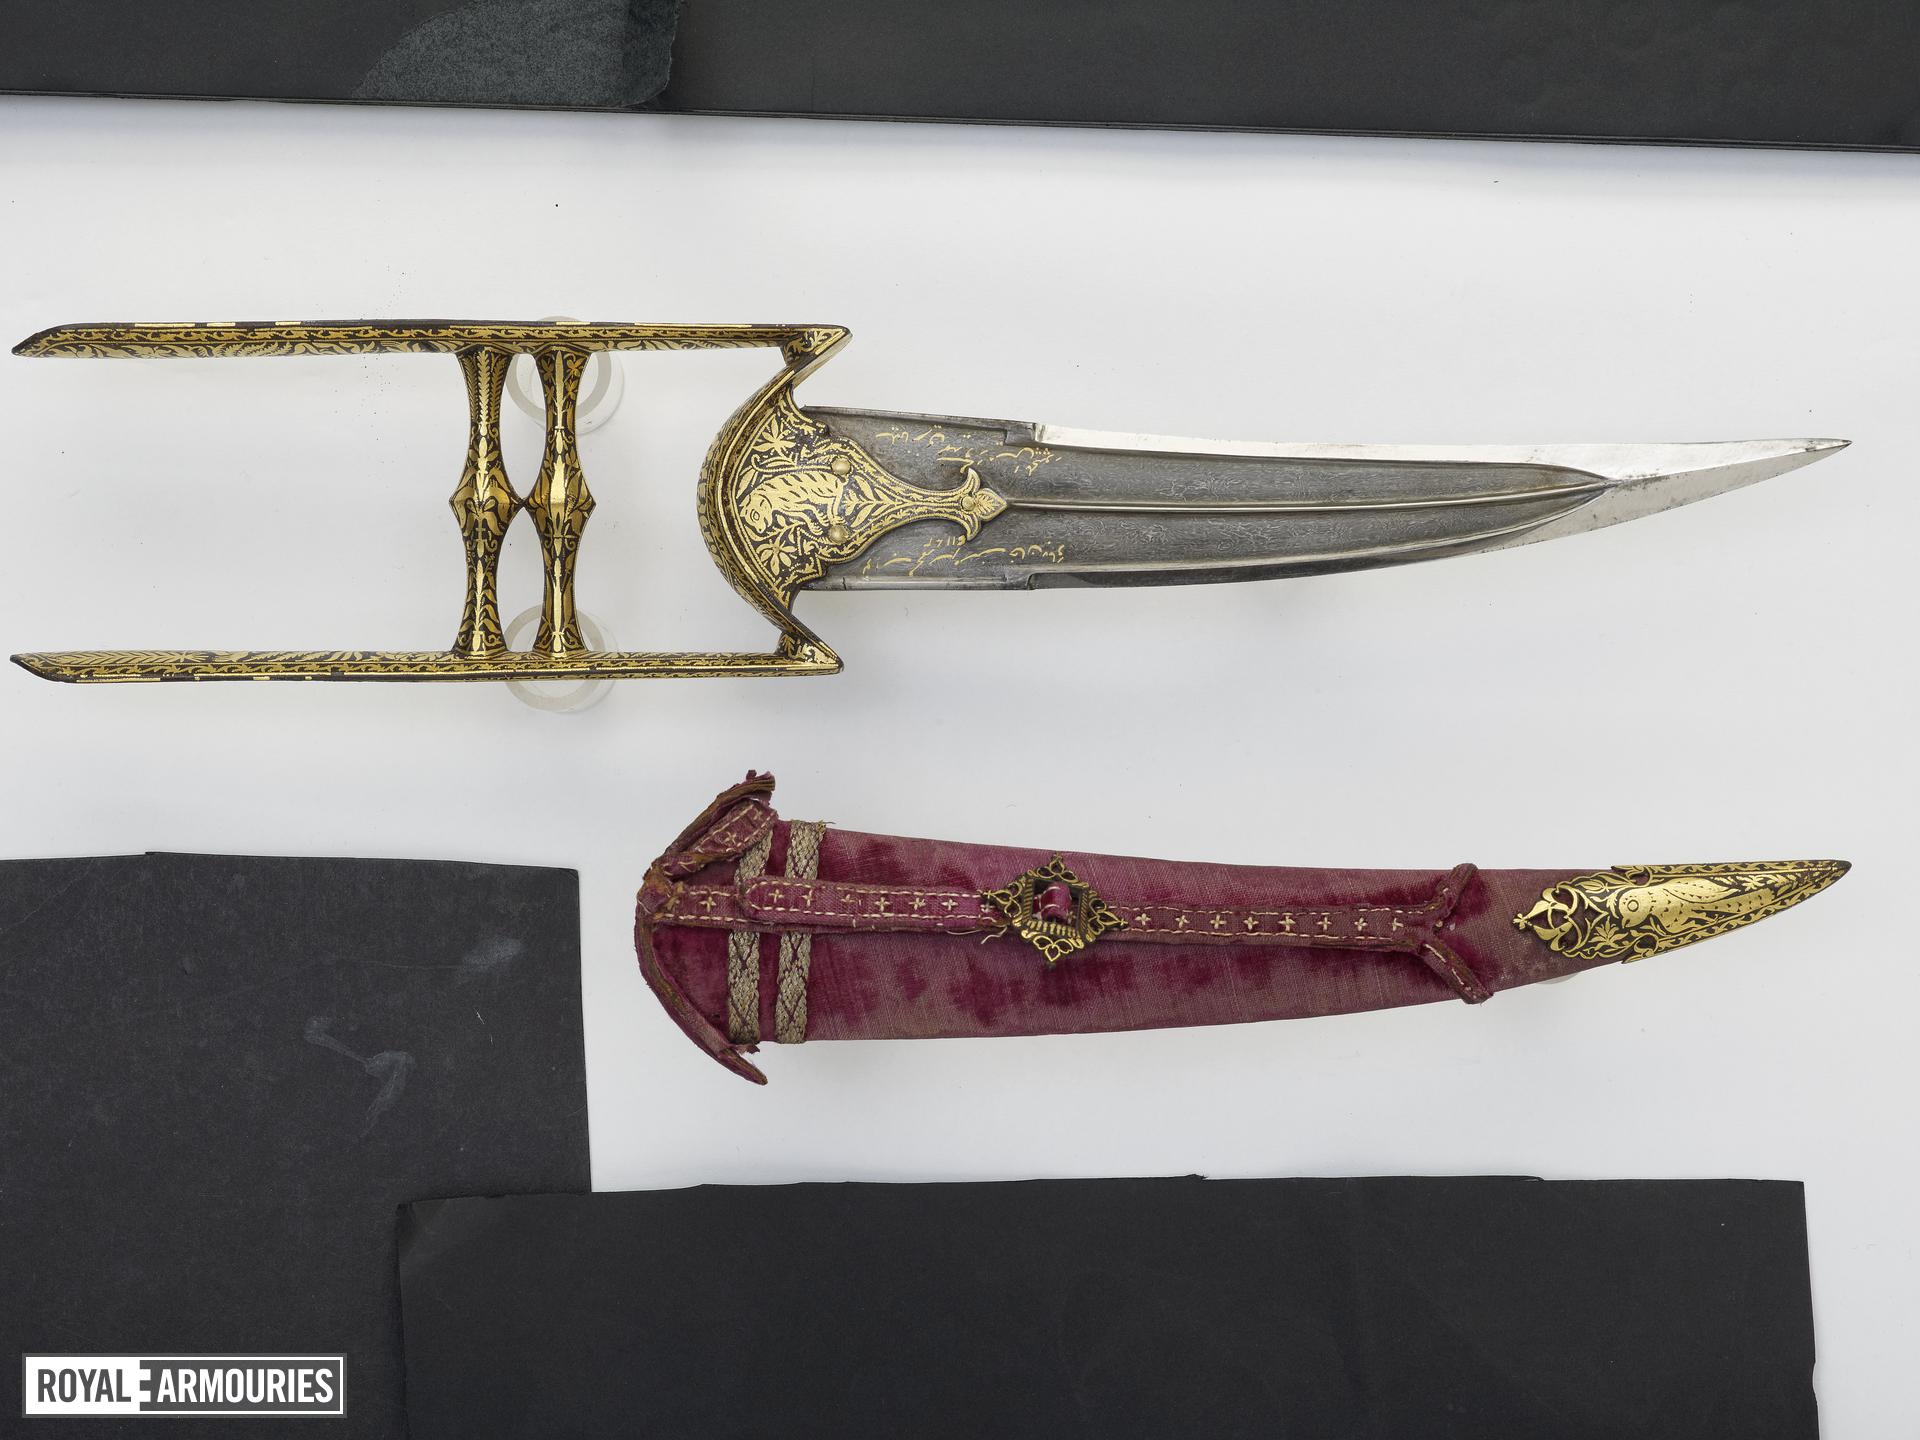 Dagger (katar) with curved blade